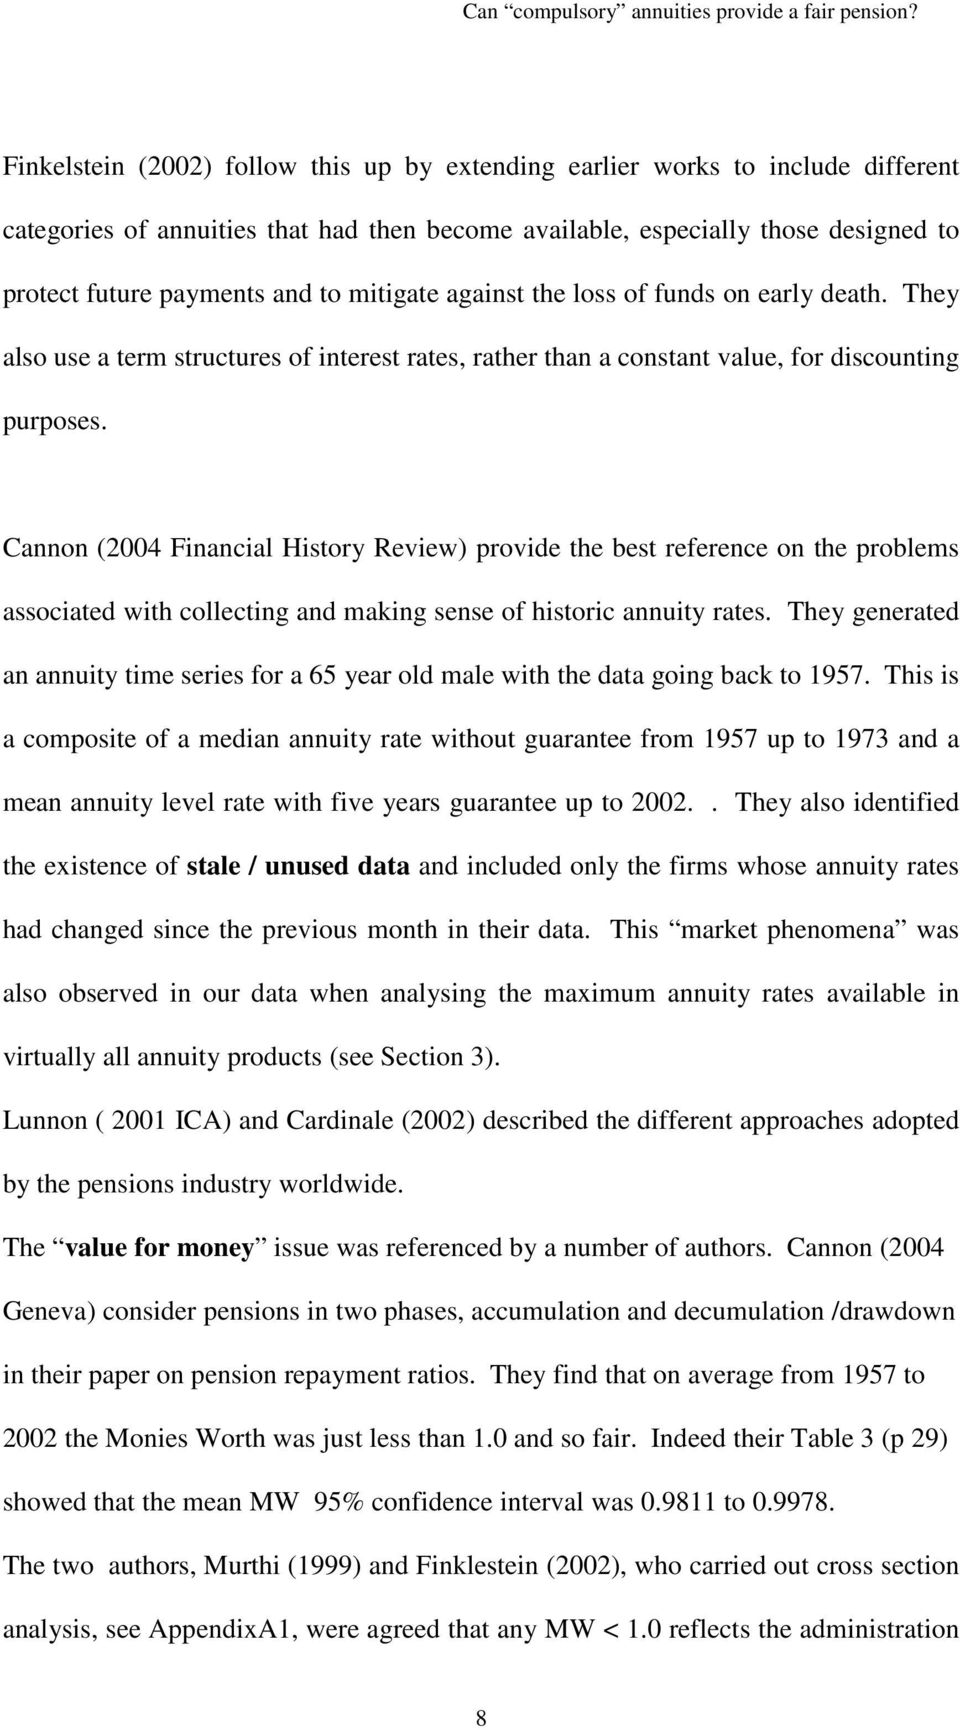 Cannon (2004 Financial History Review) provide the best reference on the problems associated with collecting and making sense of historic annuity rates.